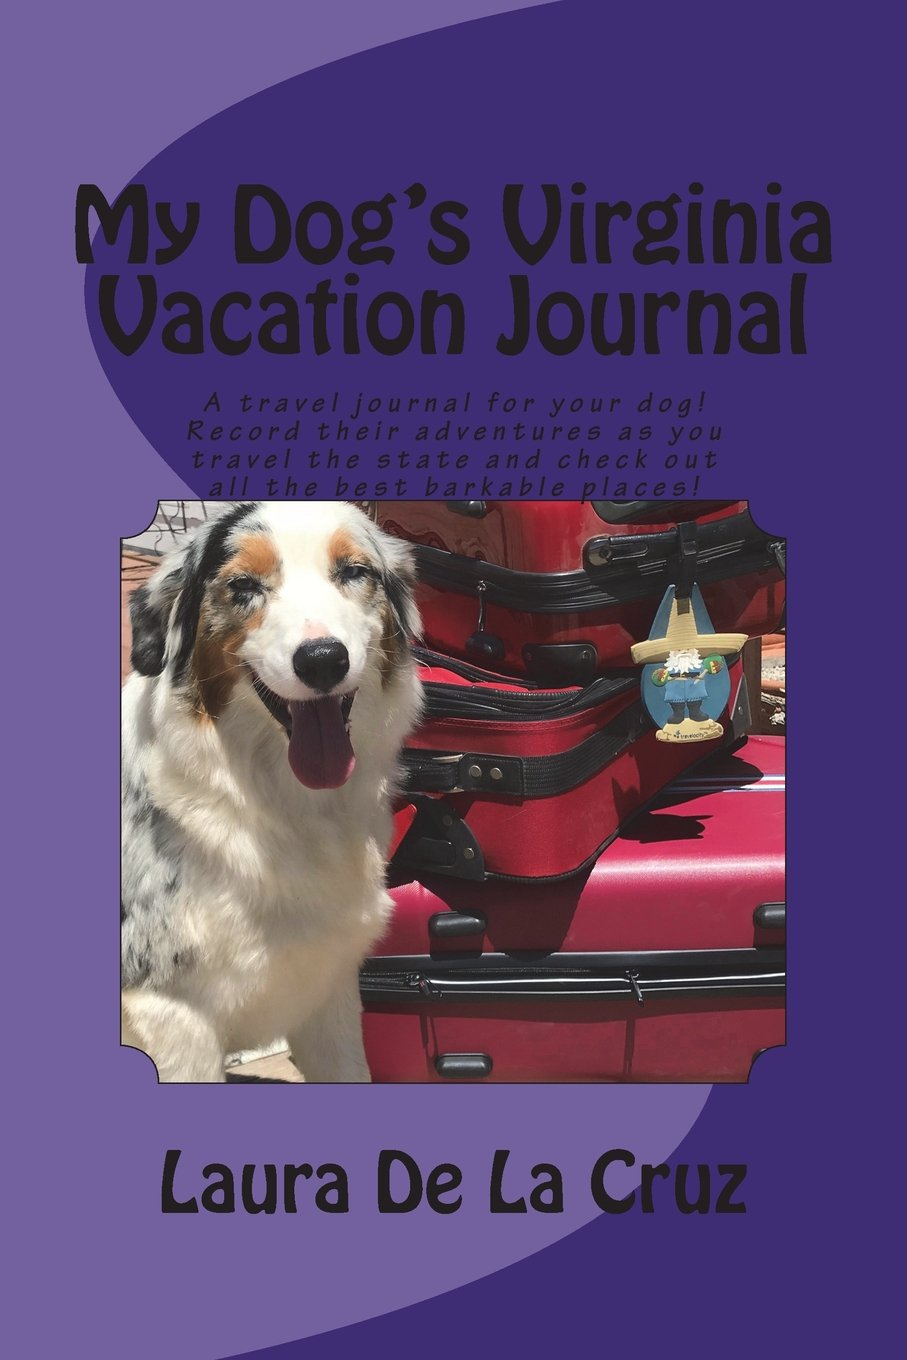 My Dog's Virginia Vacation Journal: A travel journal for your dog! Record their adventures as you travel the state and check out all the best barkable places! ebook